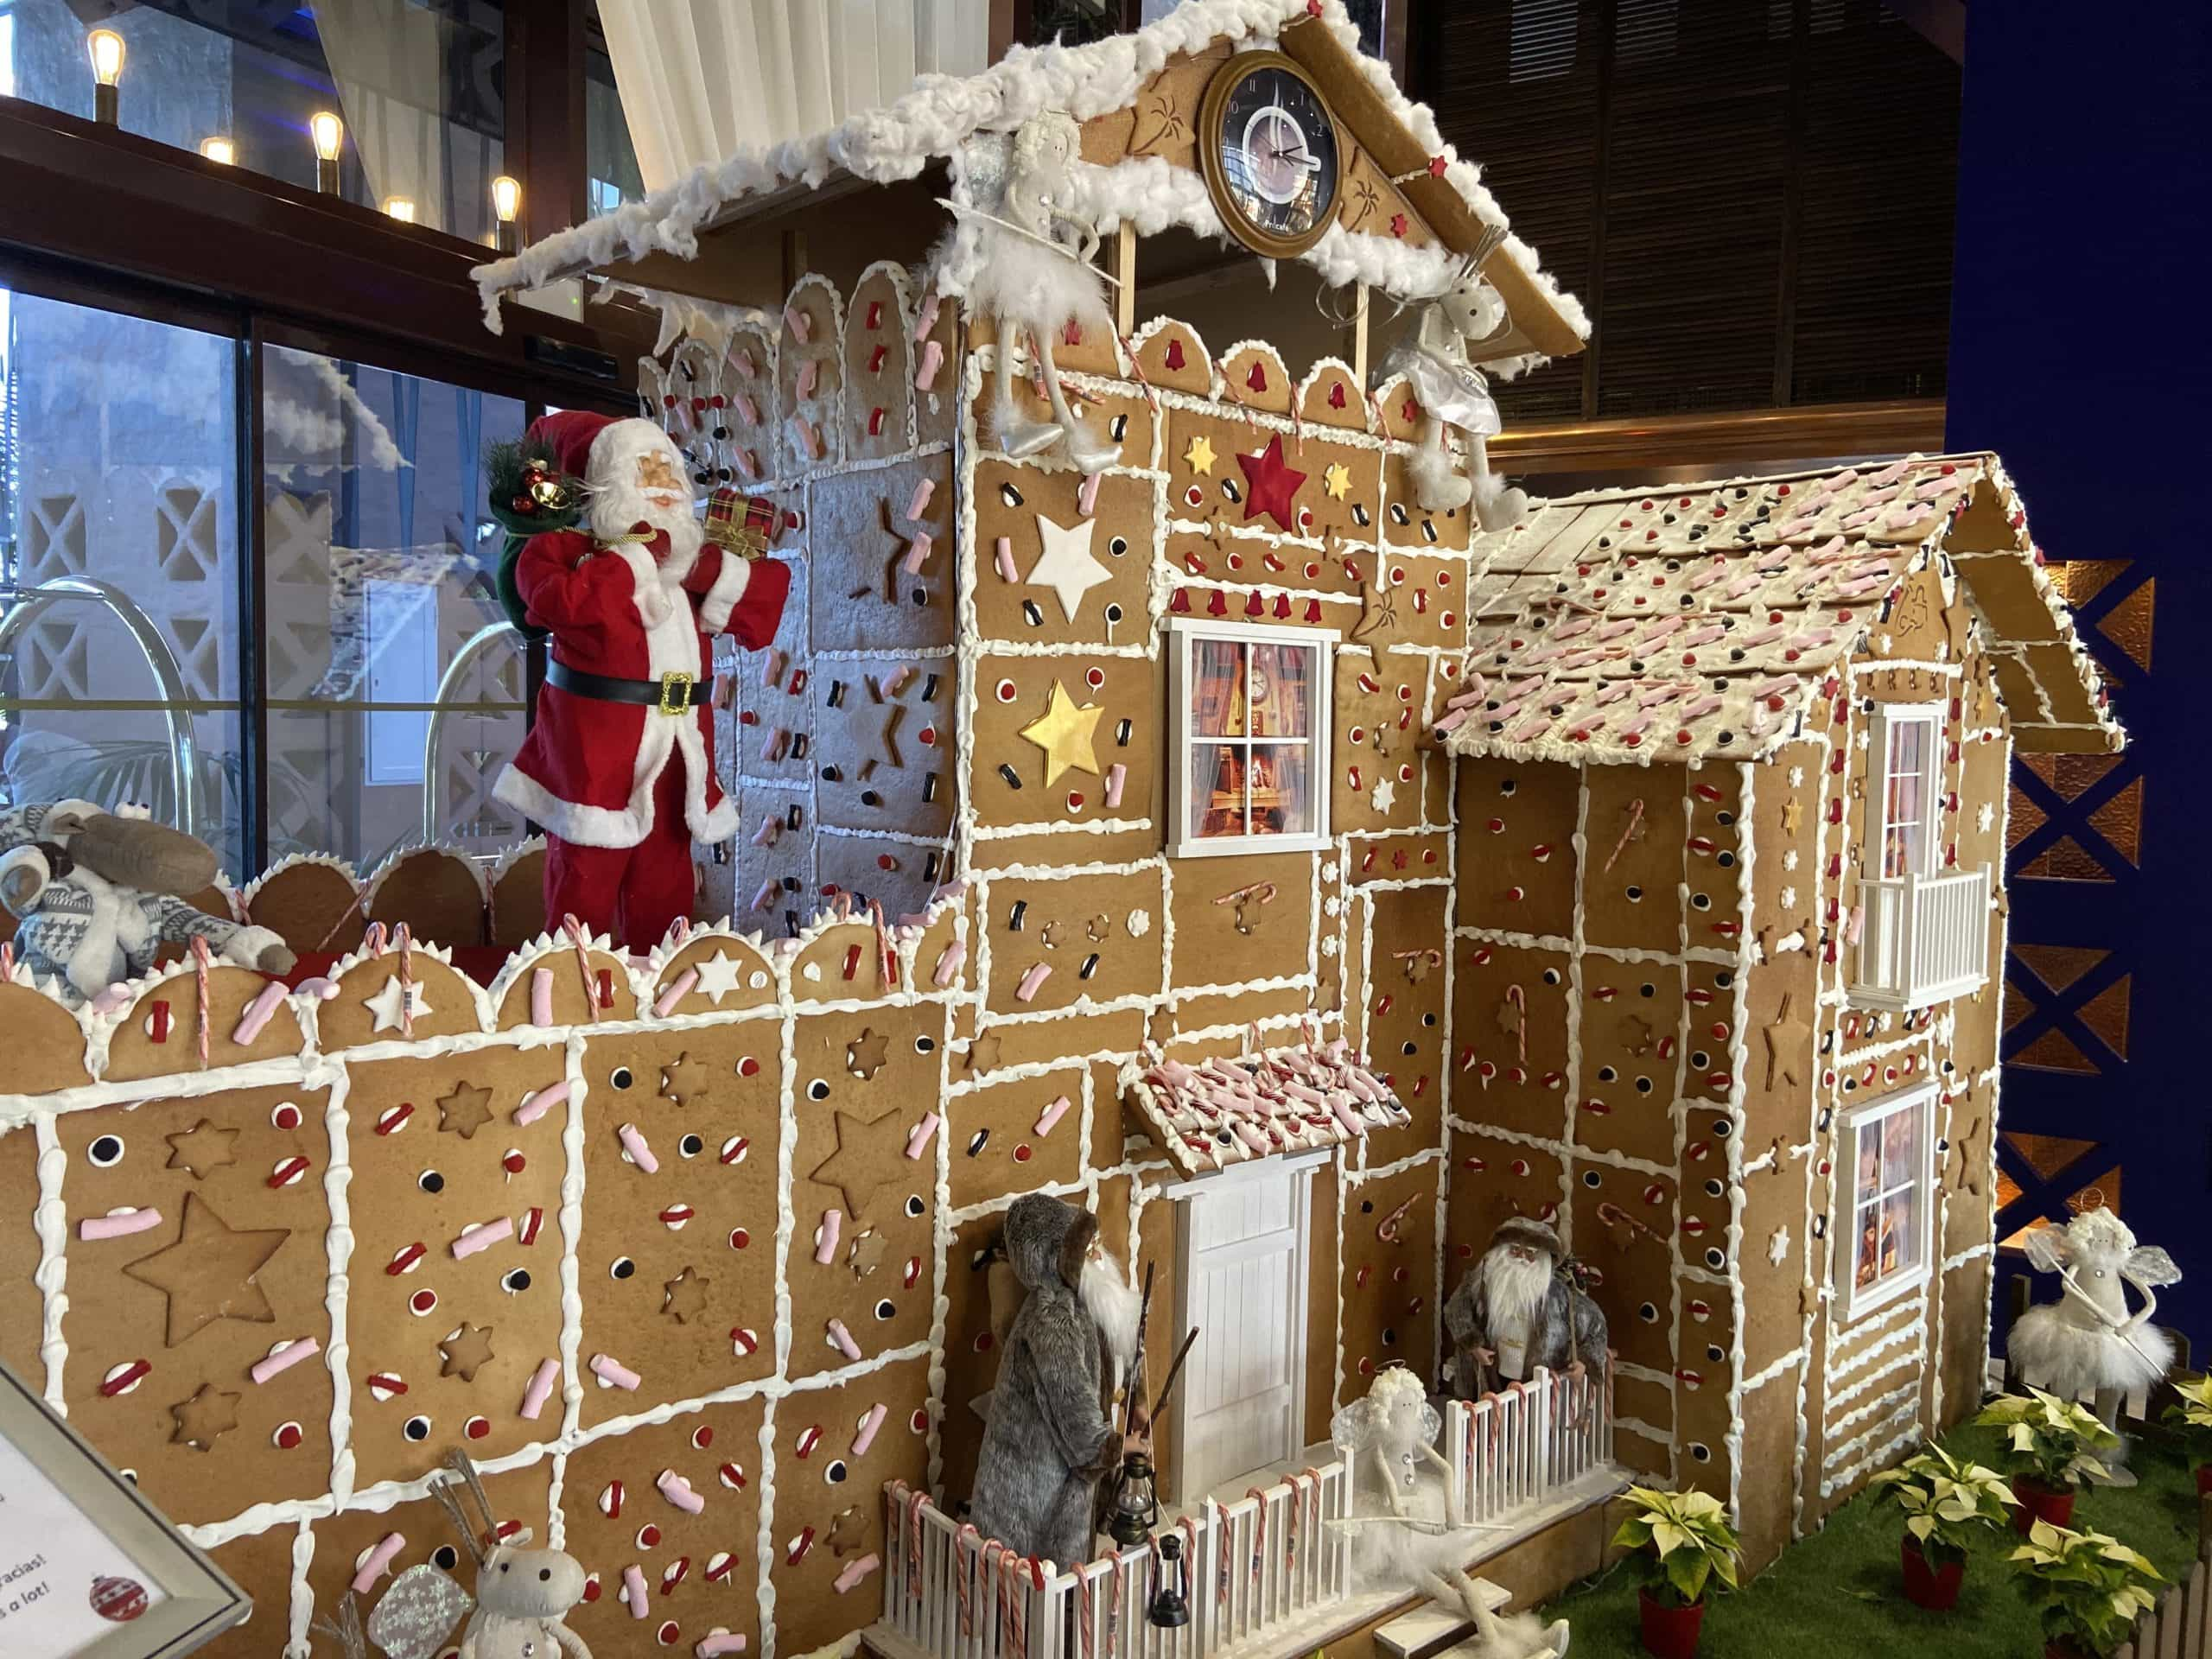 A life-size gingerbread house